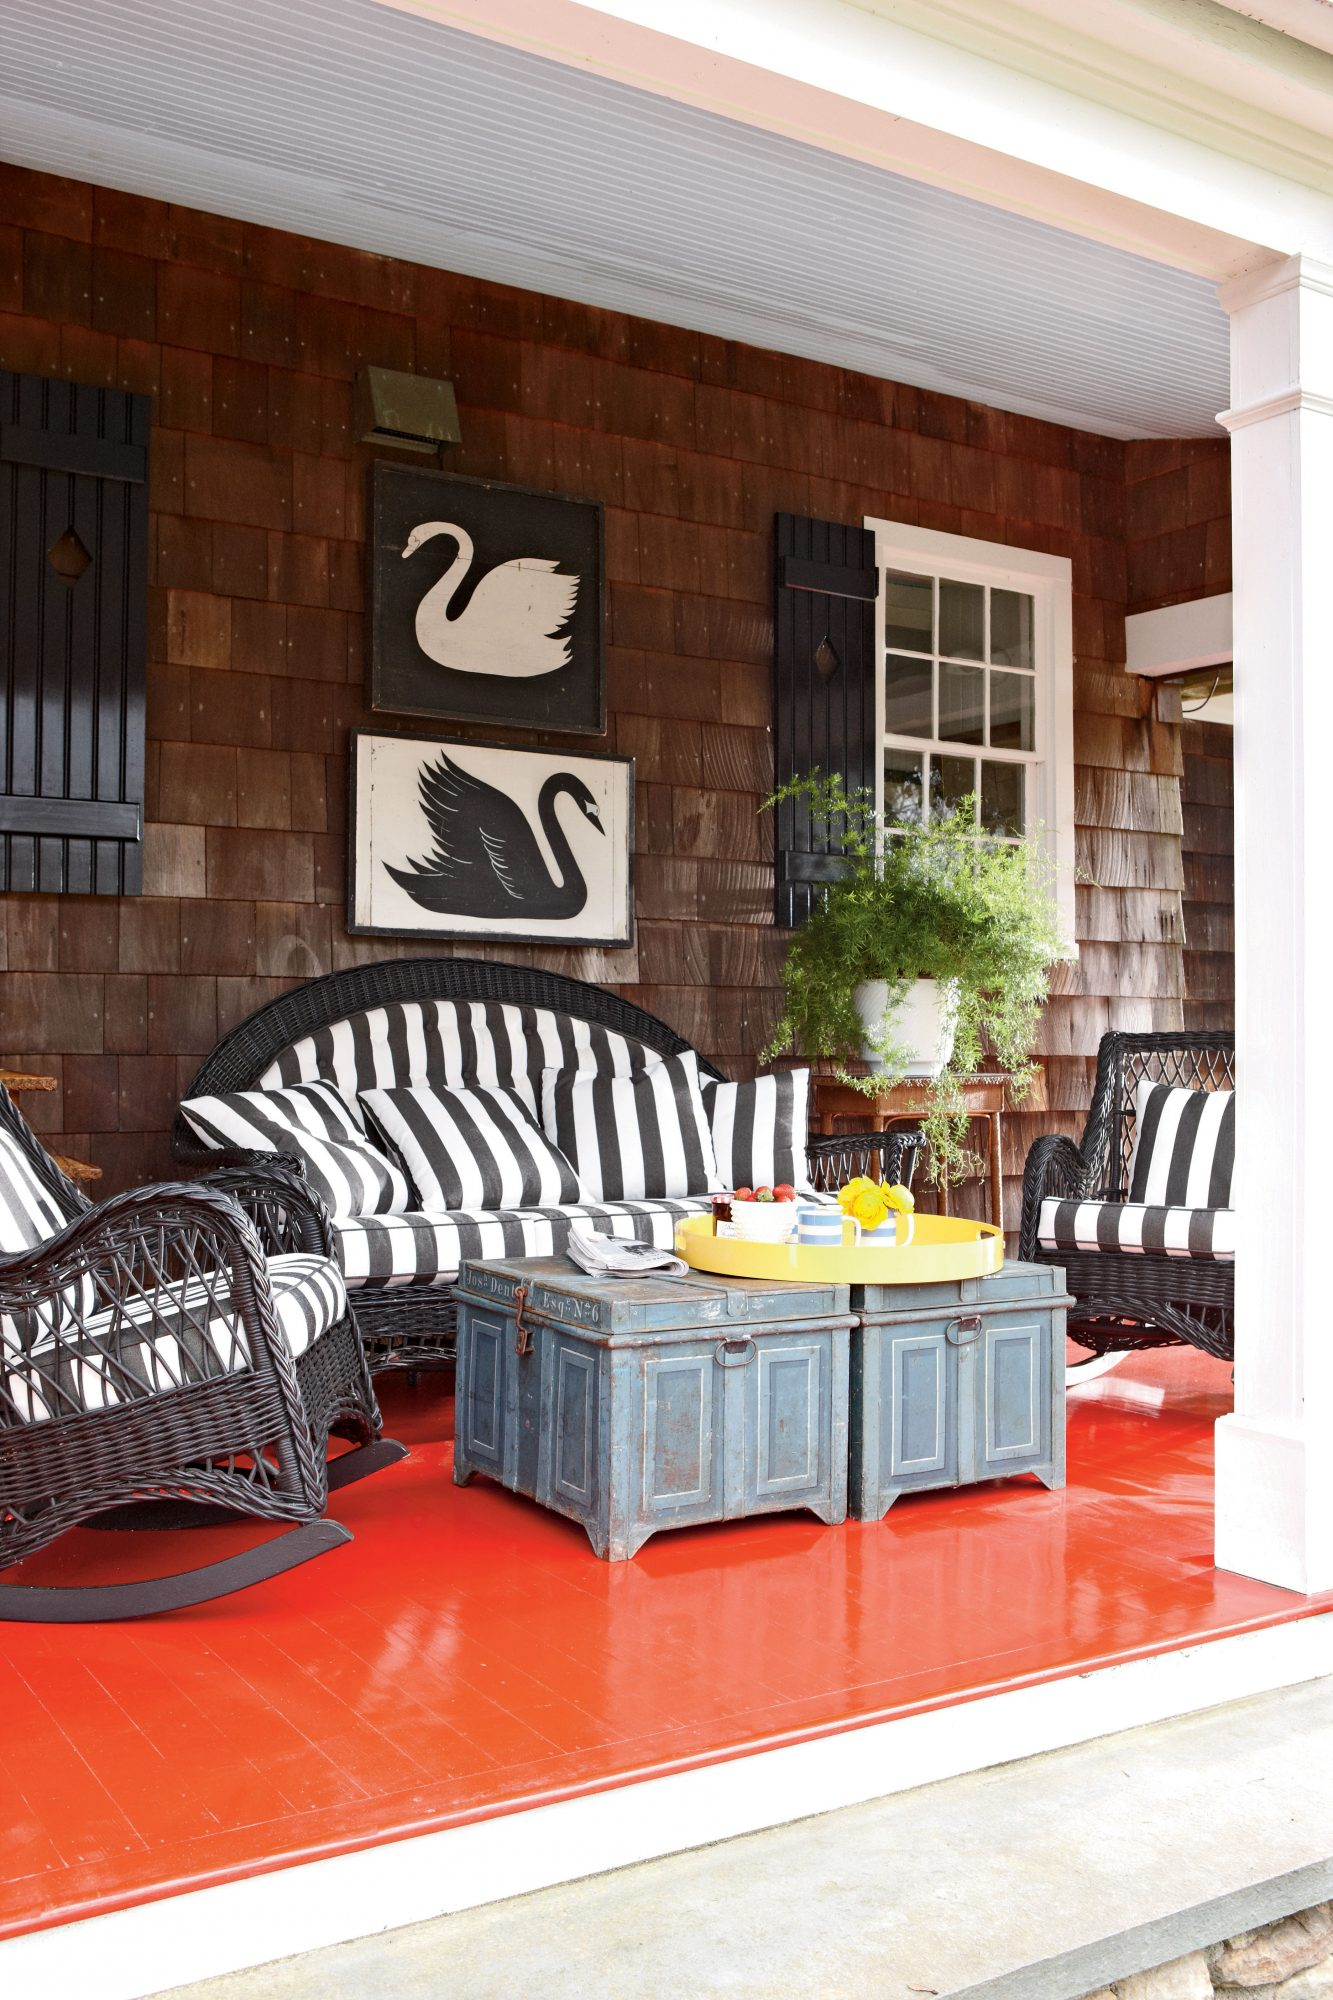 On a whimsical play of a classic color combination, a glossy red floor contrasts with black-and-white accents such as the striped outdoor cushions and decorative wall art.